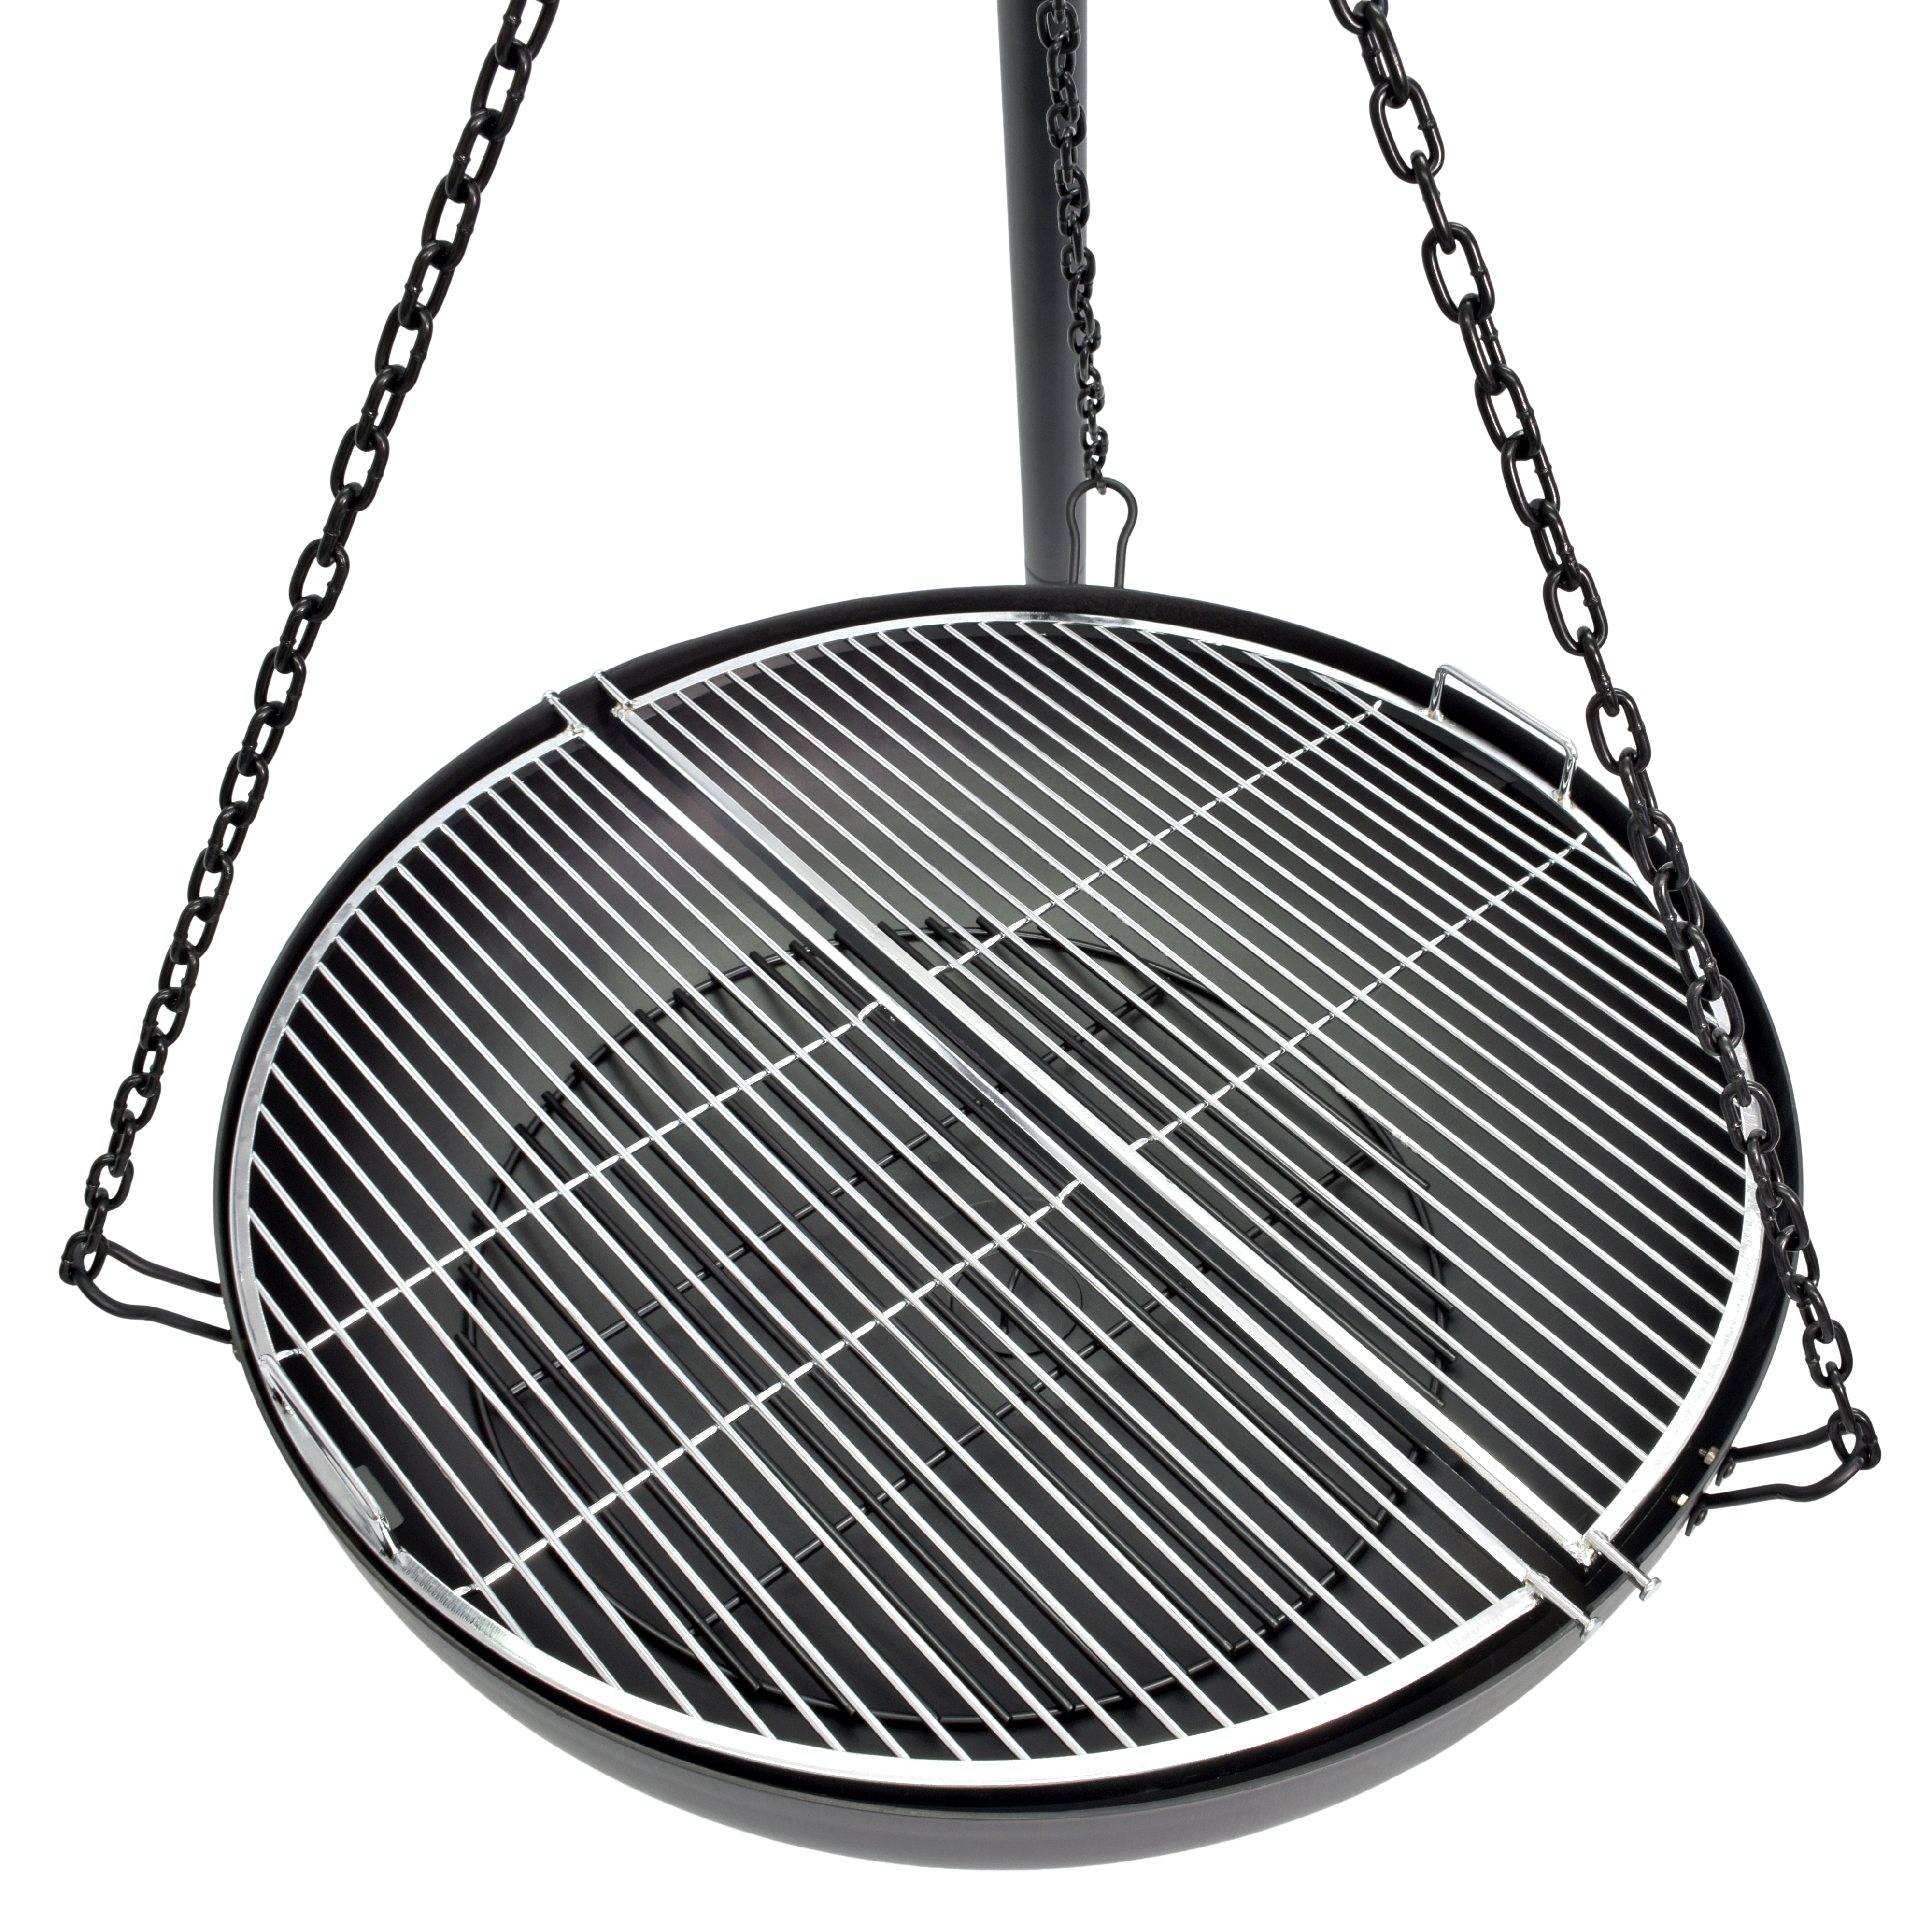 Chrome-Plated Steel Cooking Grates